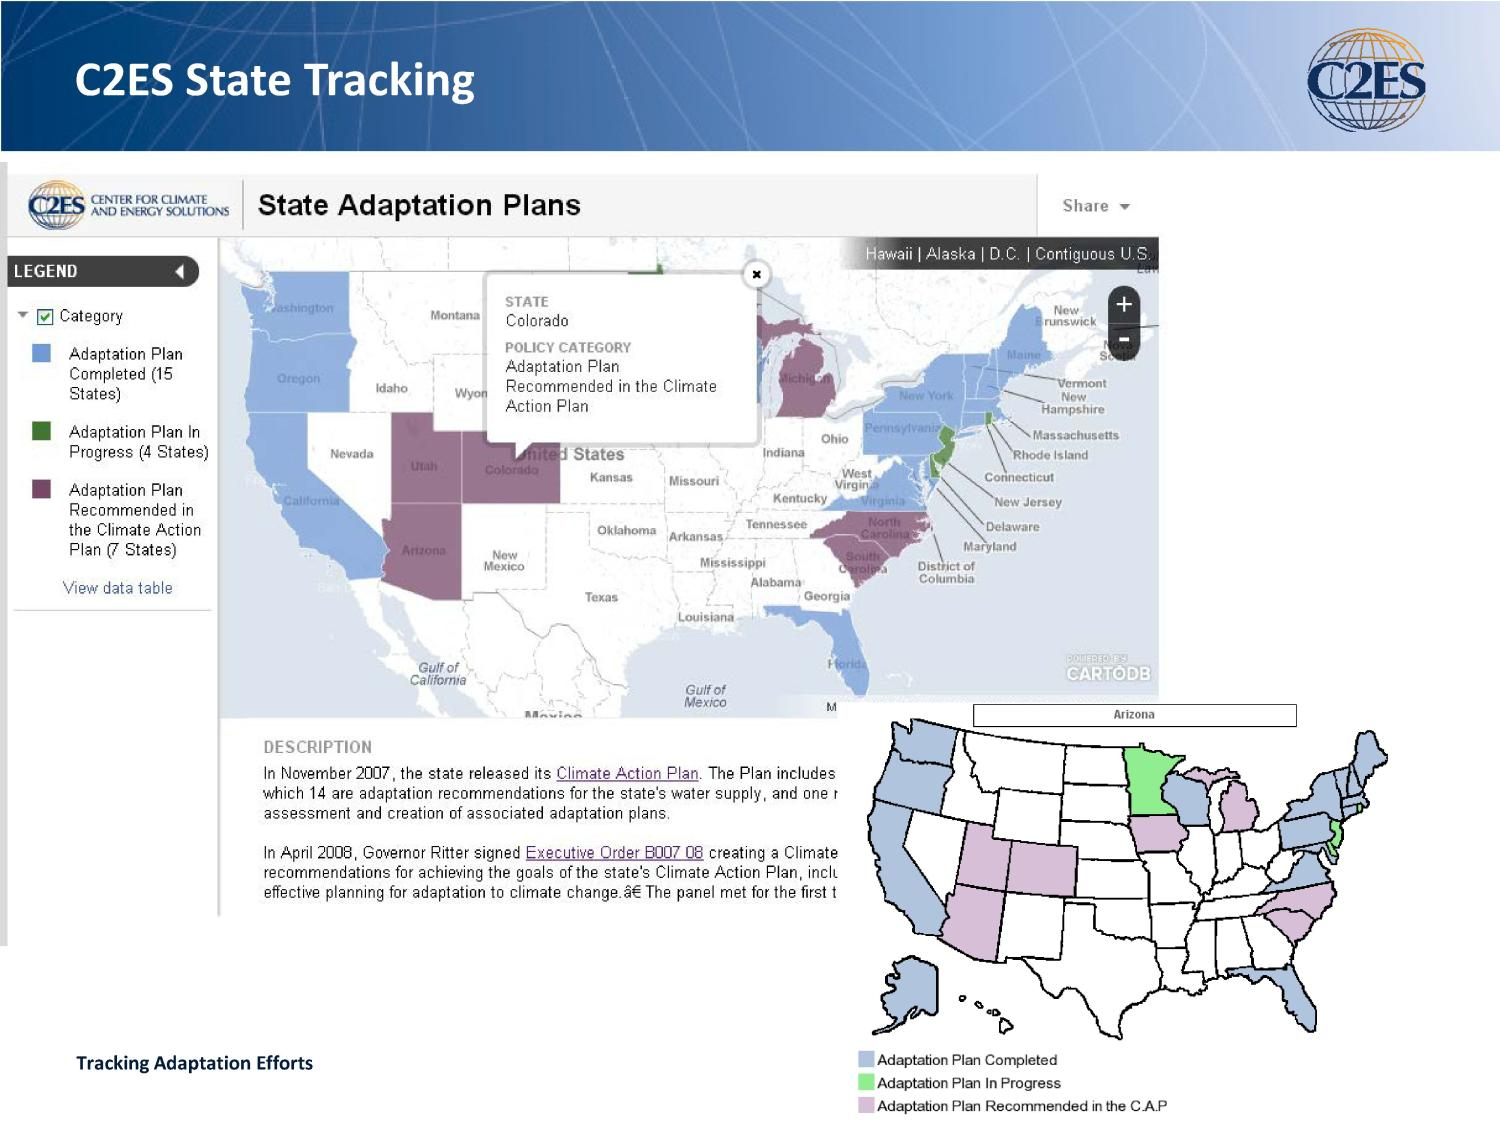 Tracking Adaptation Efforts                                                                                                      [Sequence #]: 4 of 8